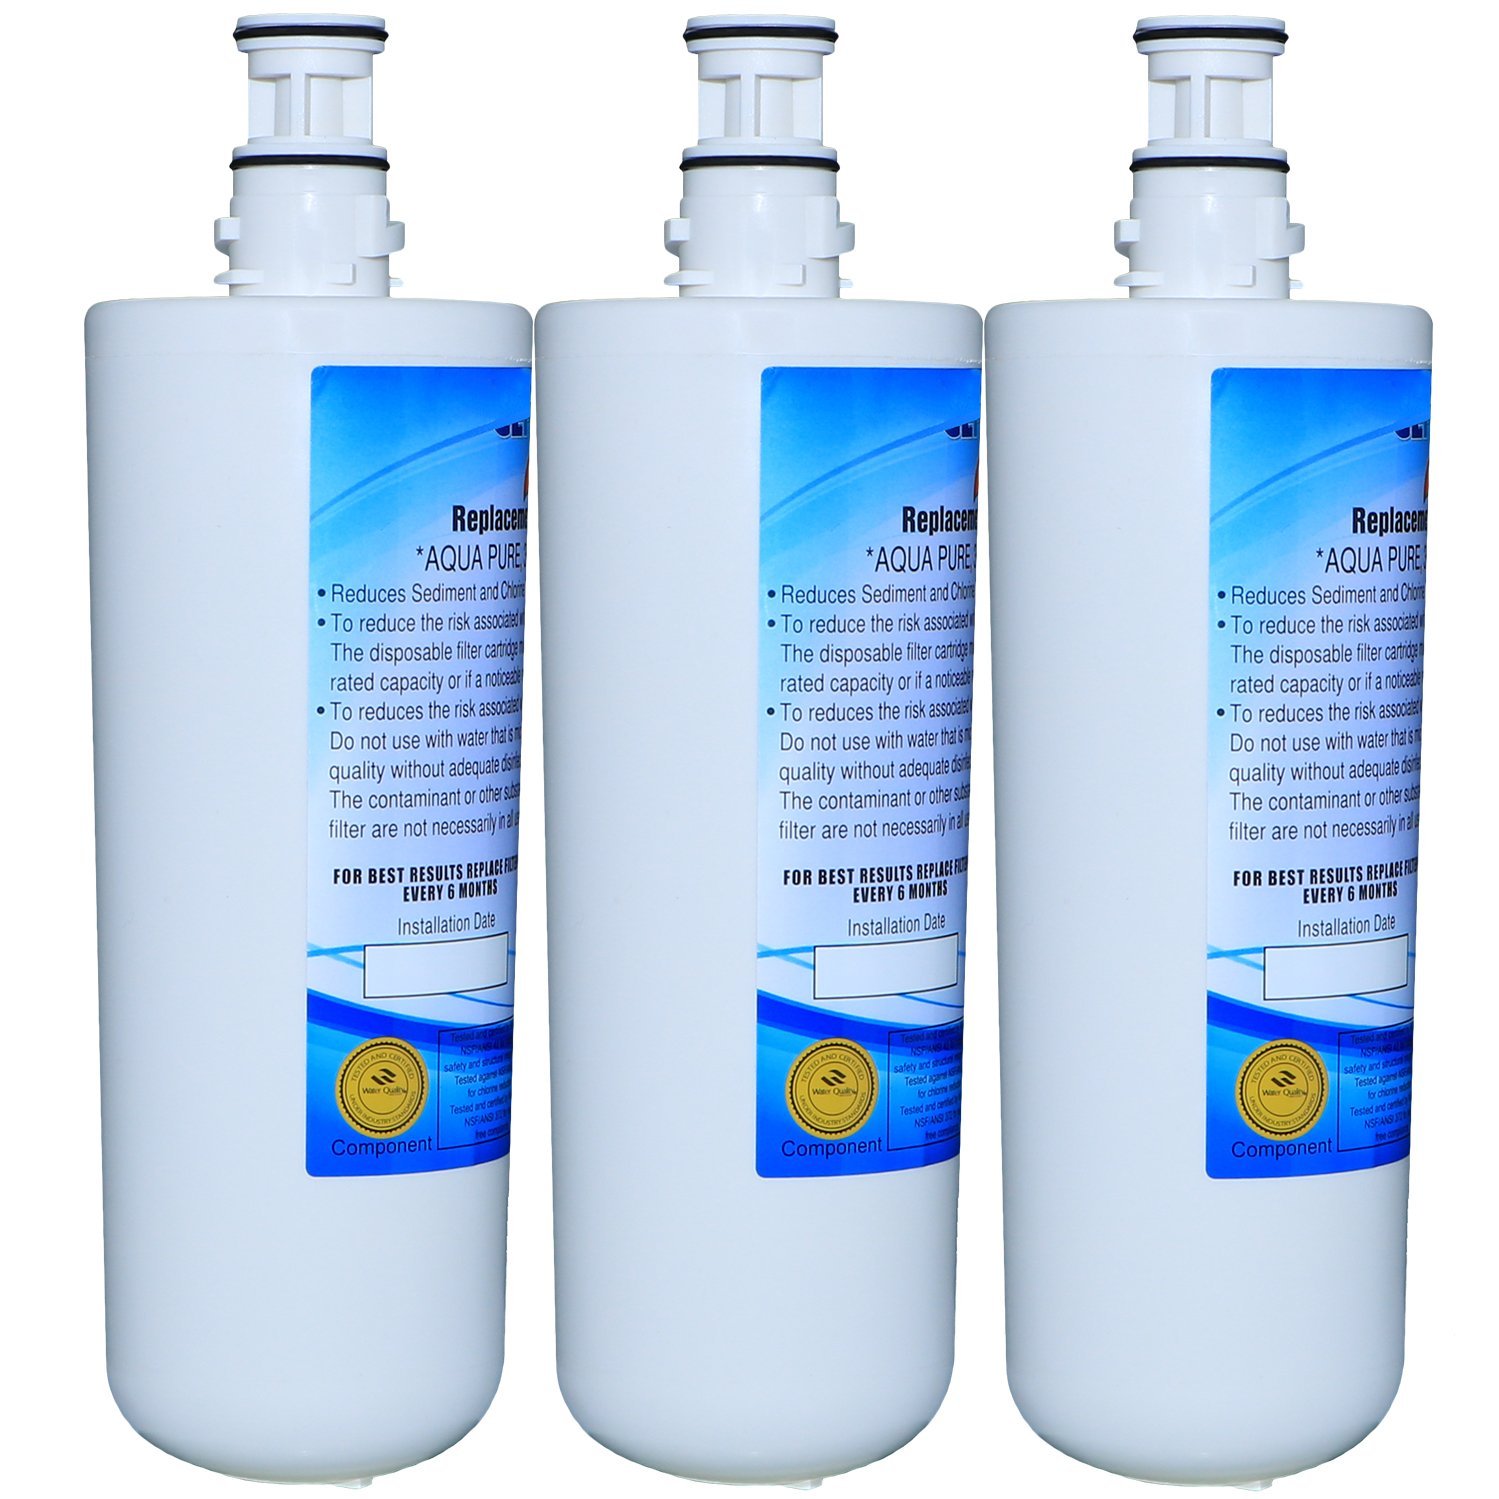 EXCELPURE Premium 3US-AF01 Undersink Standard Water Filter Replacement Compatible W/3M Filtrete 3US-AF01, 3US-AS01, 3US-PF01, 3US-PS01, Whirlpool WHCF-SRC, WHCF-SUFC, WHCF-SUF - 3PACK